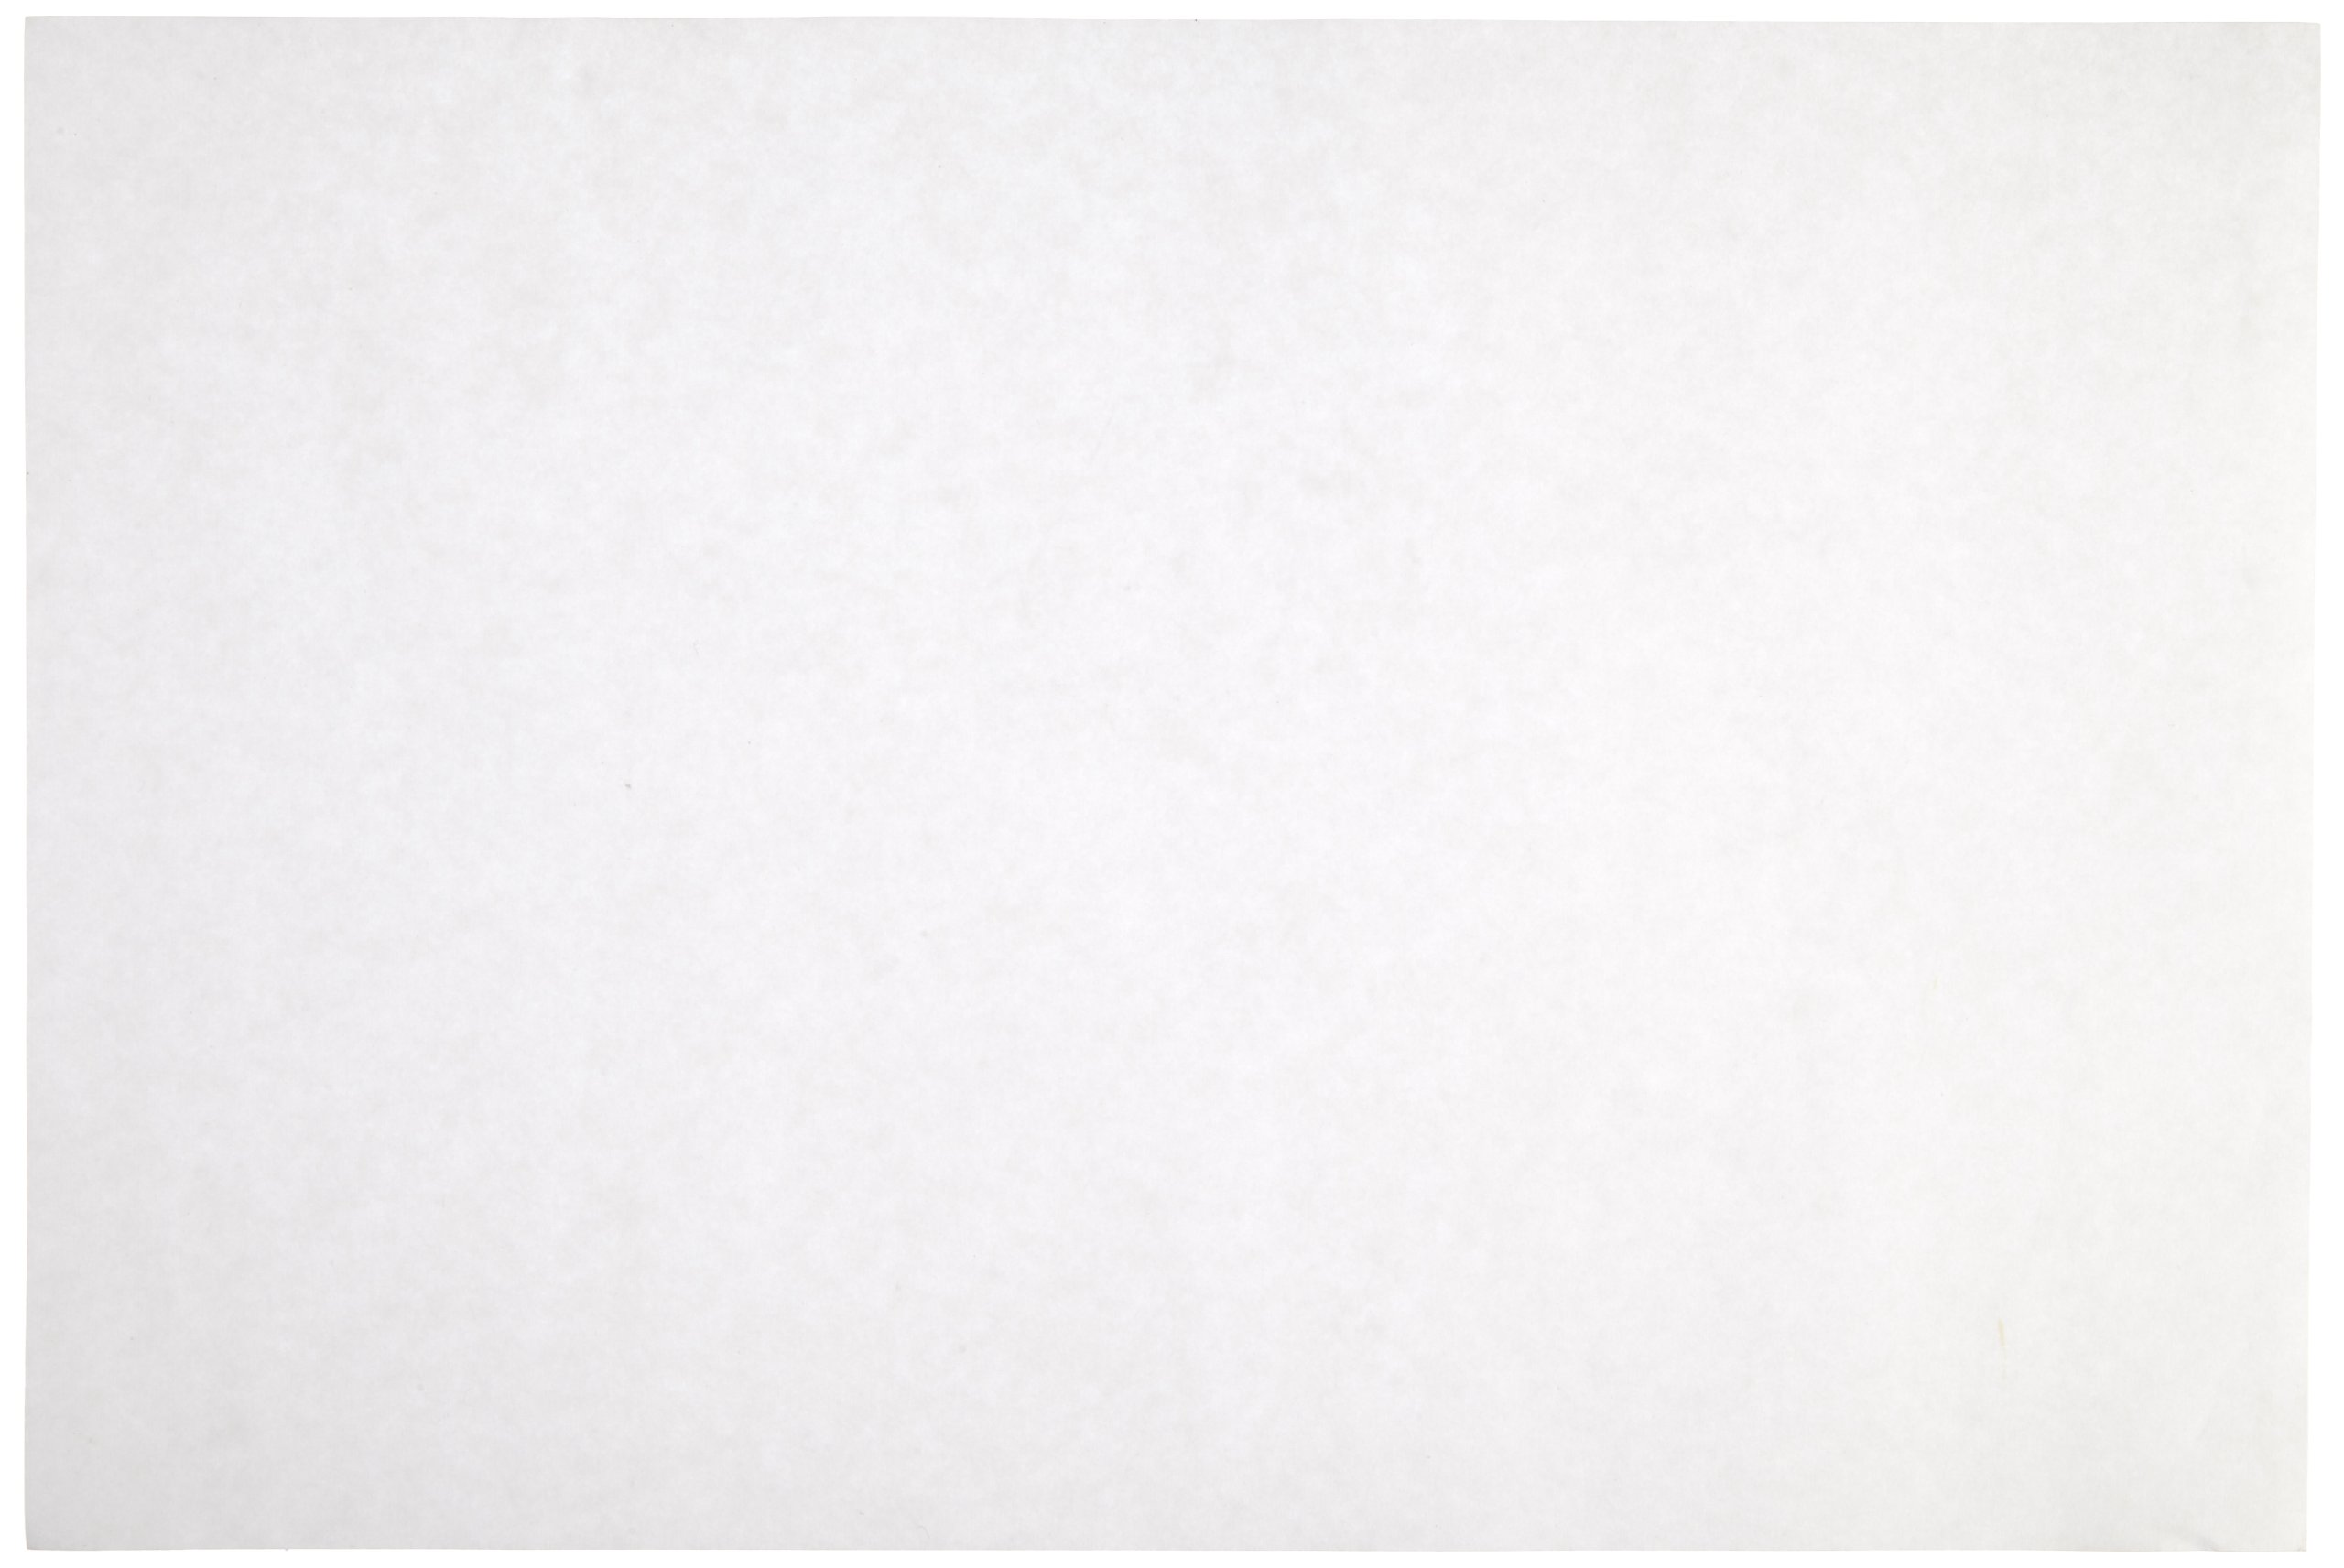 Sax Sulphite Drawing Paper, 80 lb, 9 x 12 Inches, Extra-White, Pack of 500 - 053943 by Sax